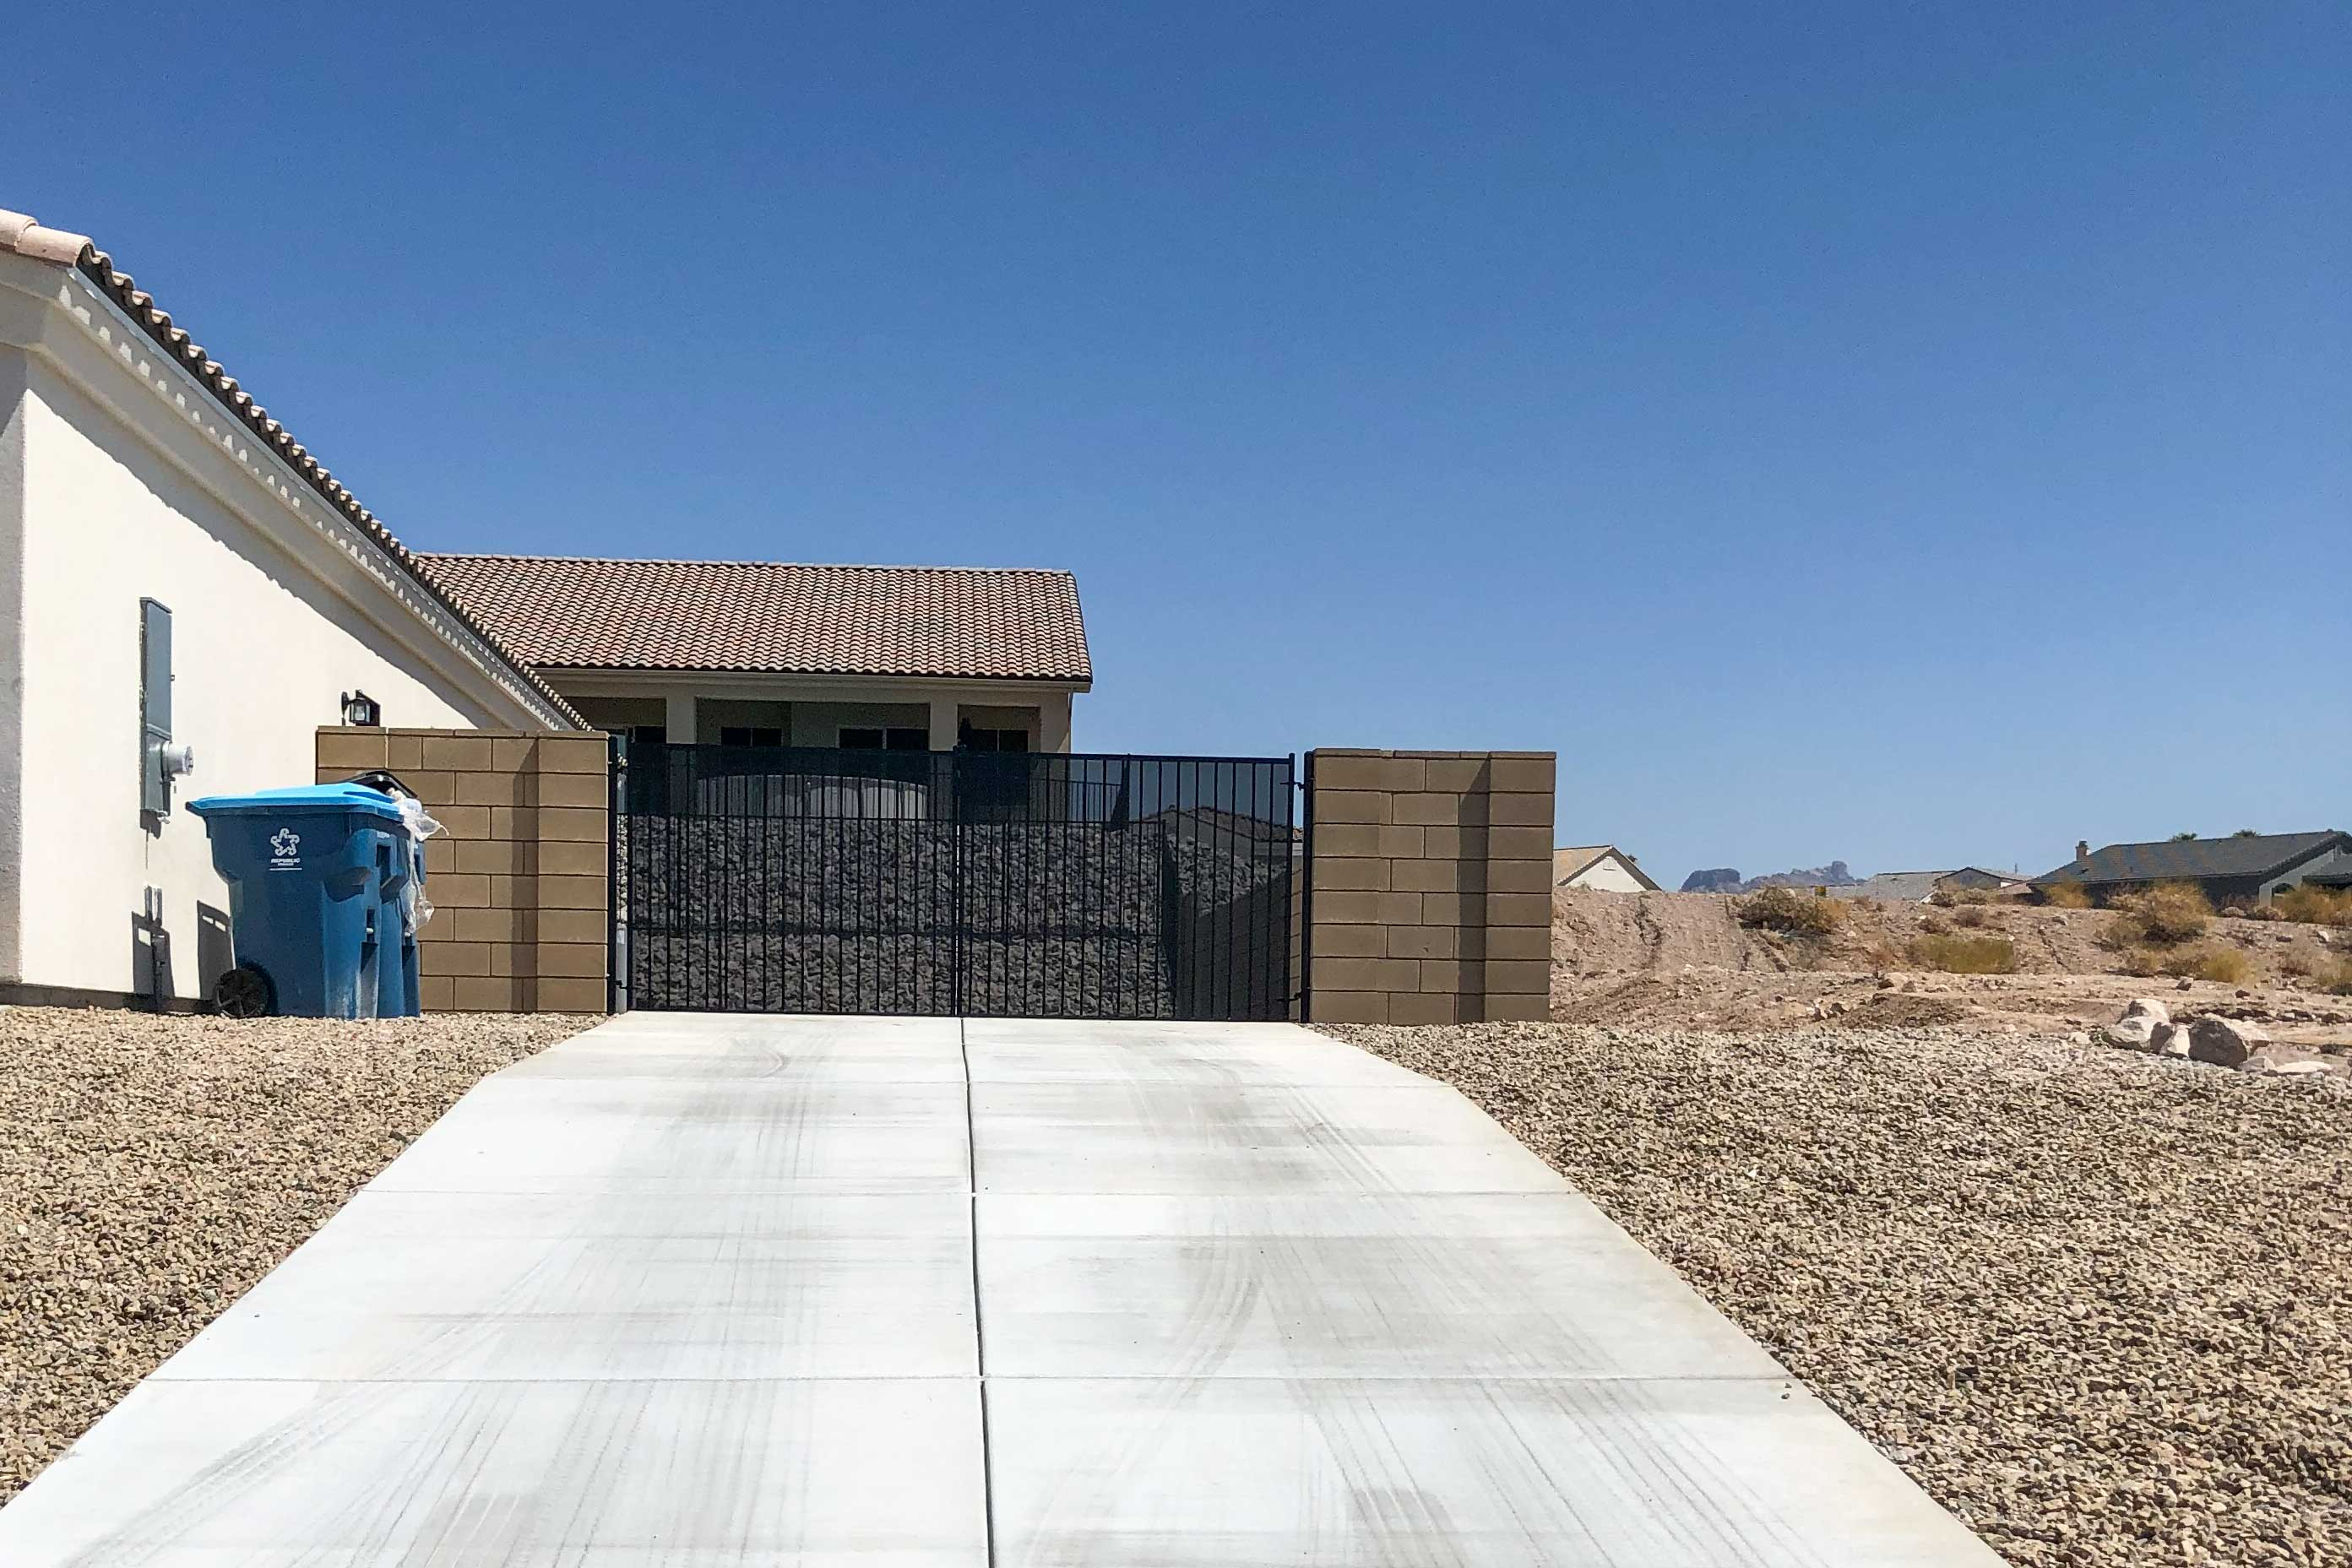 This home offers 2 driveways for parking vehicles.